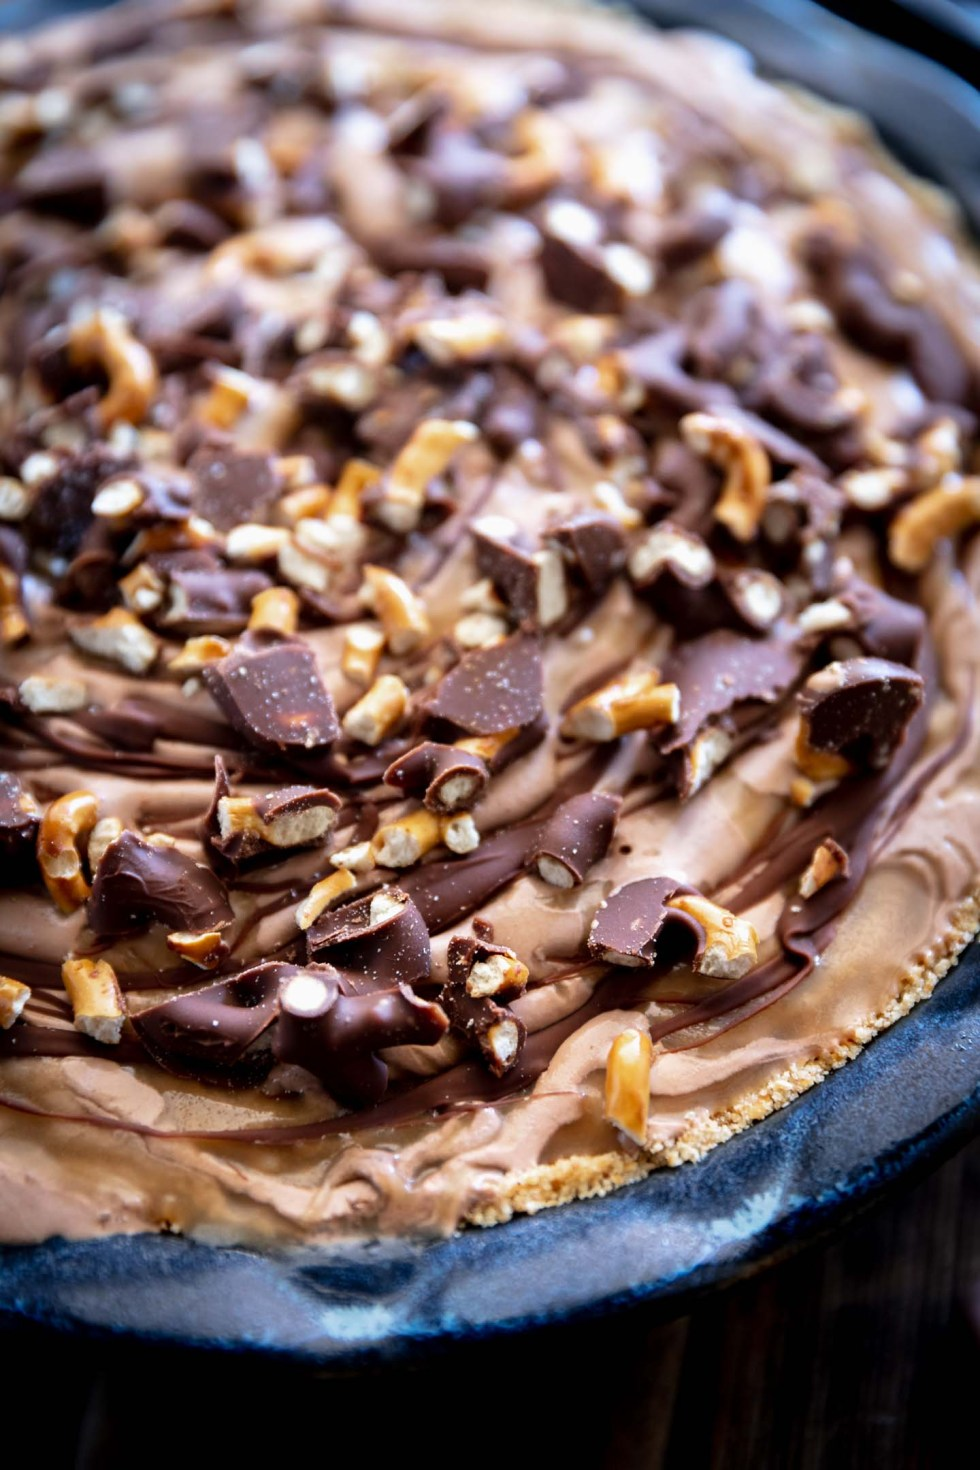 Close up of peanut butter pie with chocolate and caramel swirls